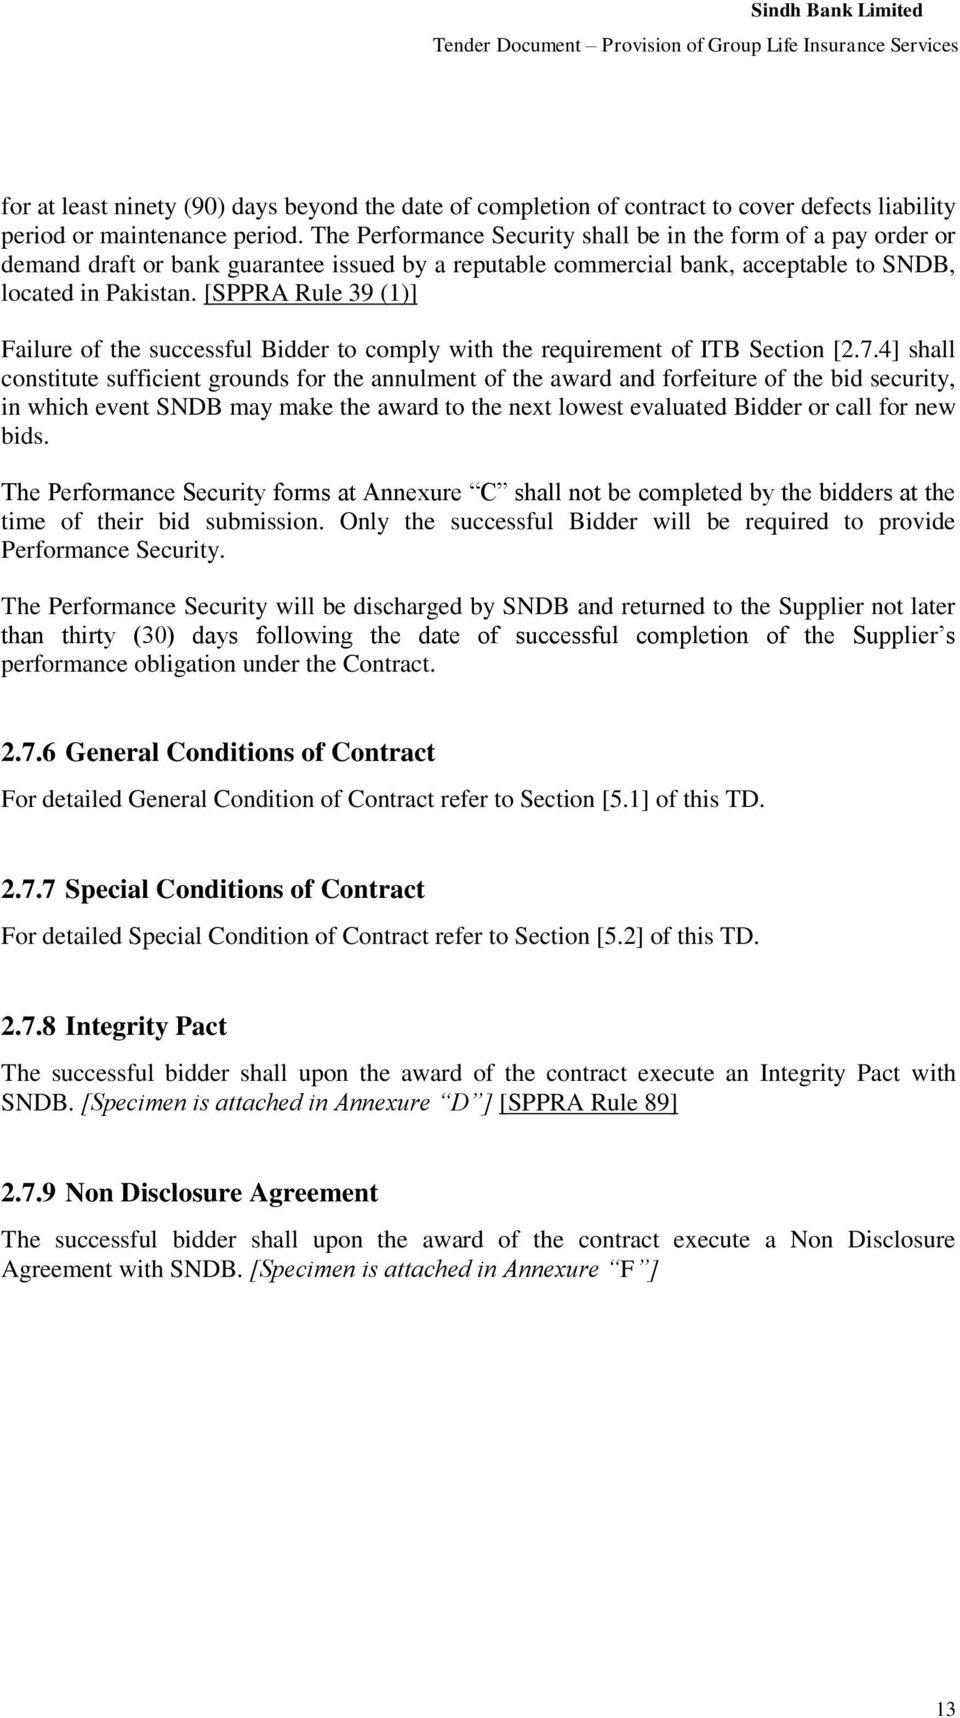 [SPPRA Rul 39 (1)] Failur of th succssful Biddr to comply with th rquirmnt of ITB Sction [2.7.